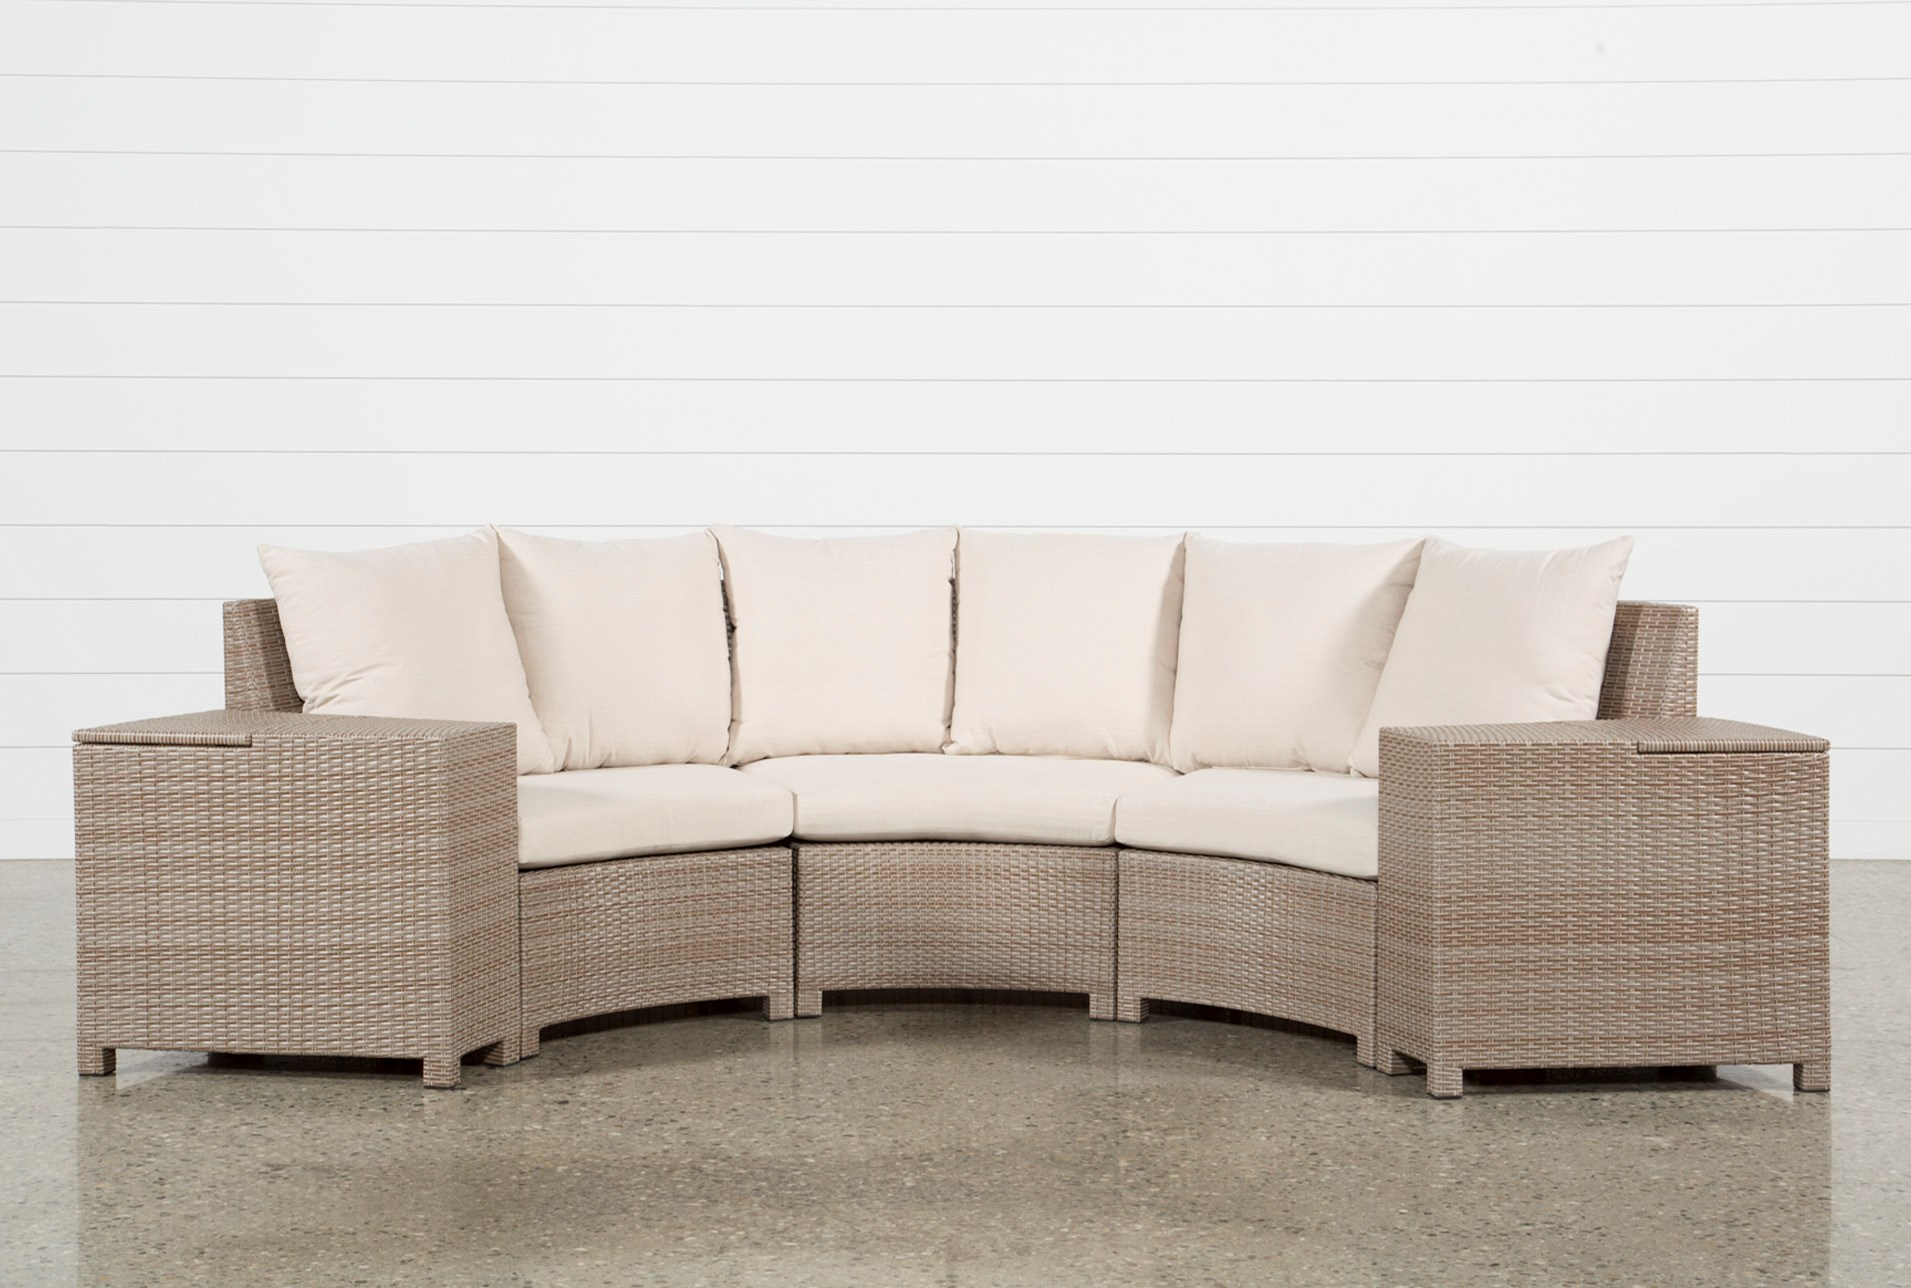 pe couch sectionals s sofa furniture shld wicker getimage patio sectional rattan goplus outdoor url set brown